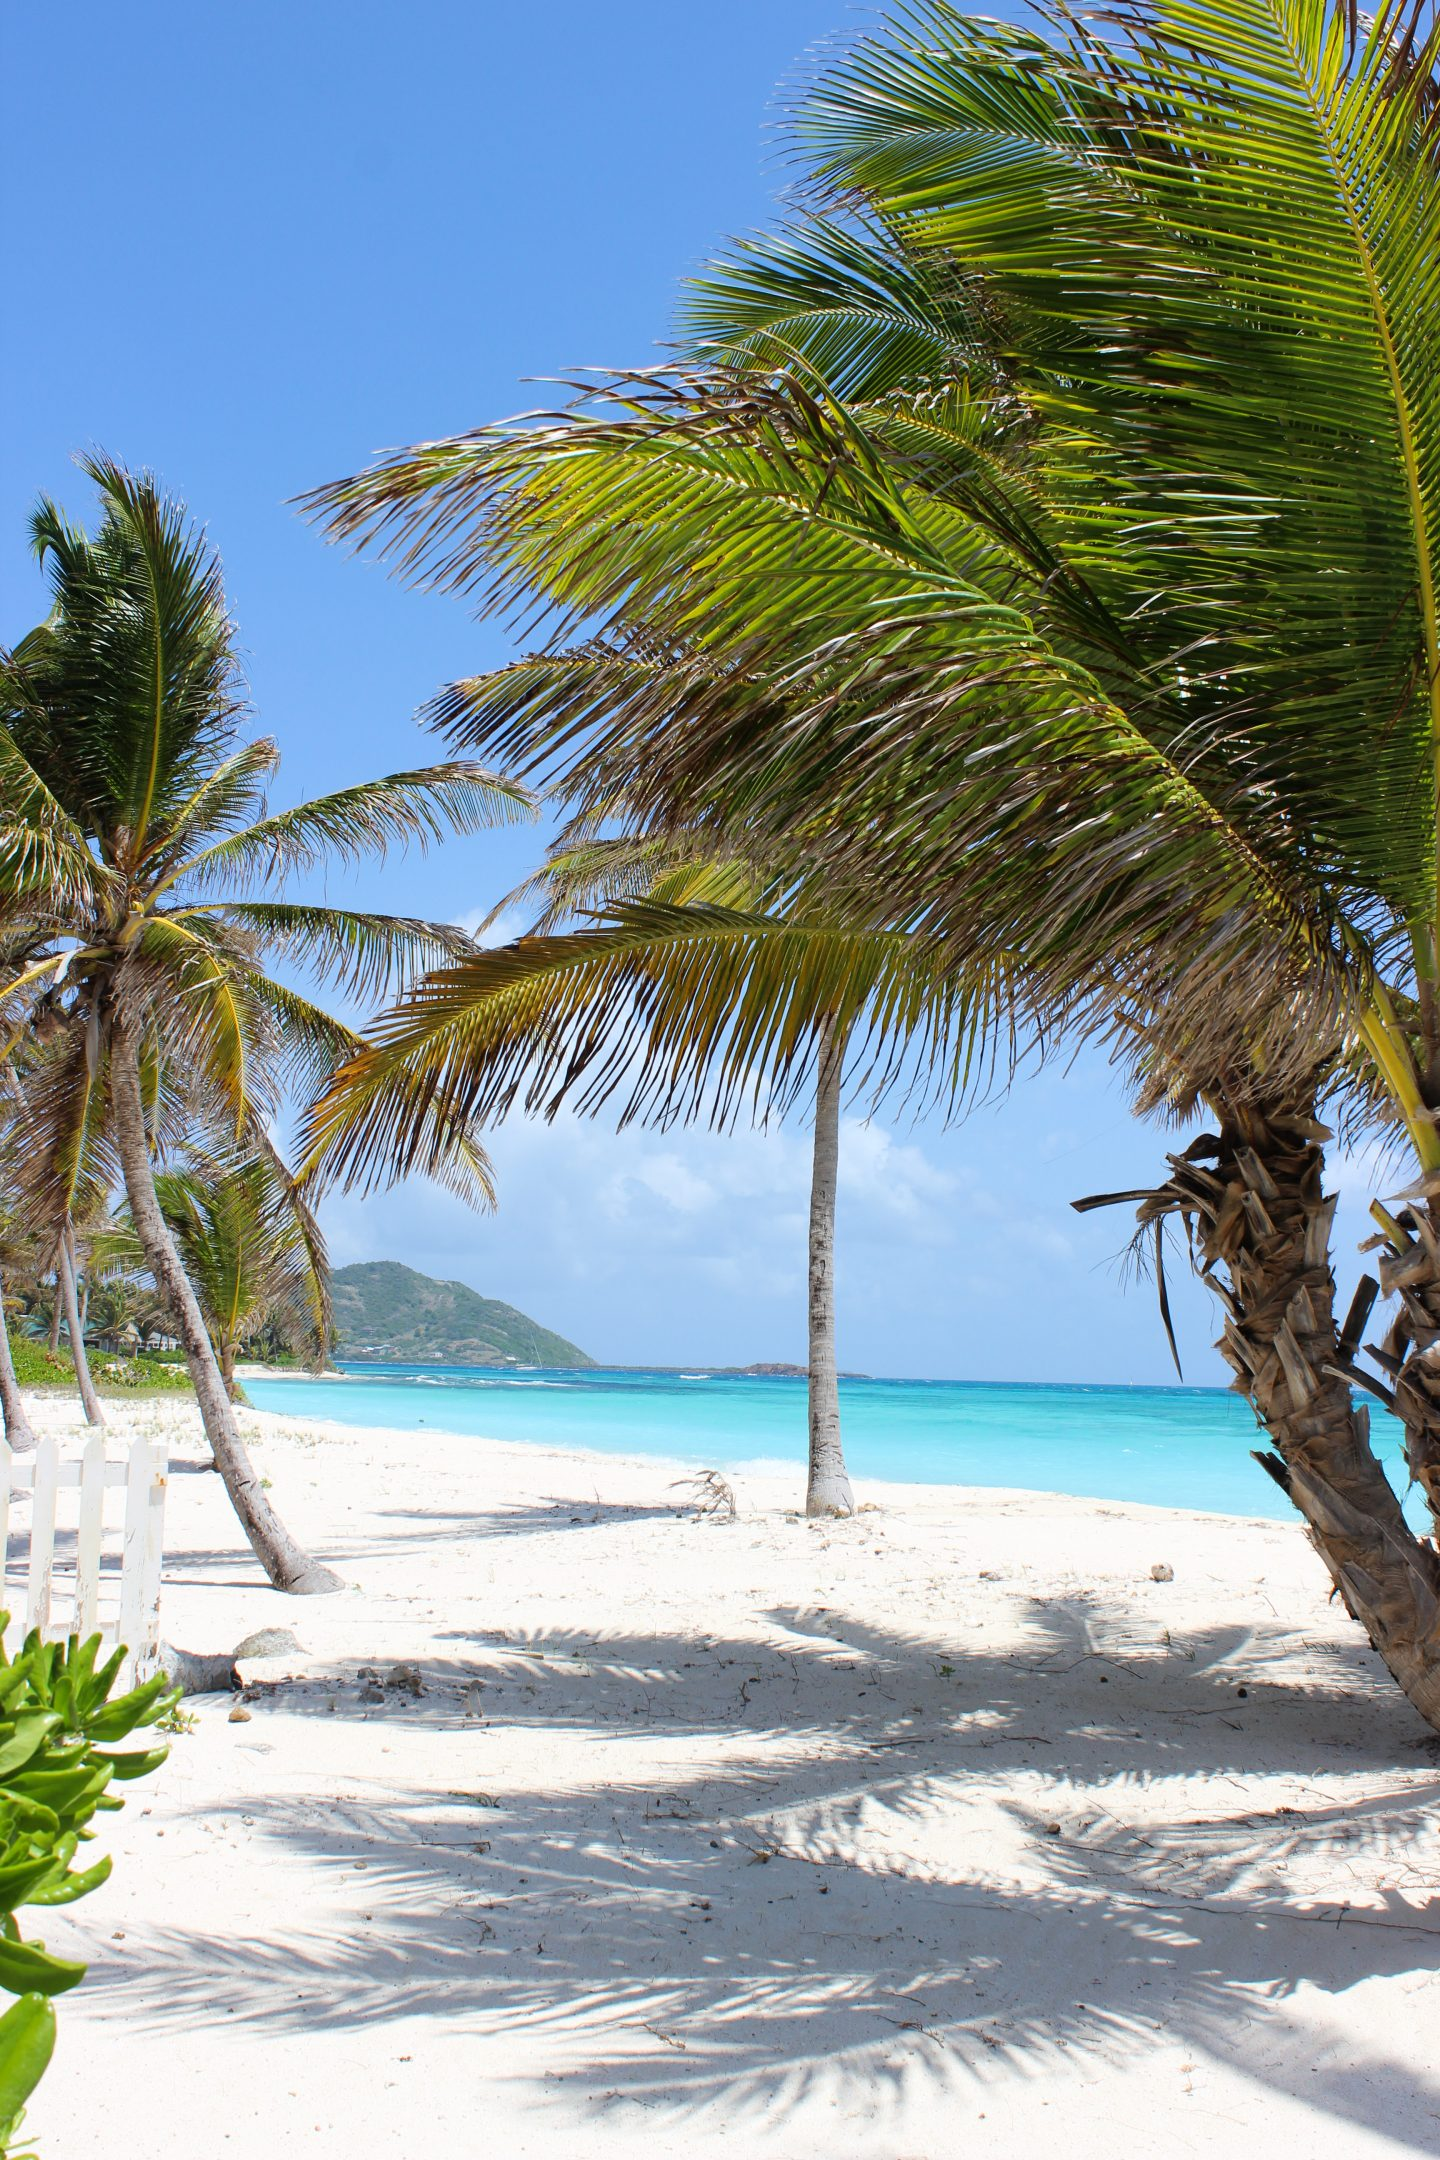 Clutch and carry on - UK Travel blogger - palm island resort, grenadines (108 of 361)